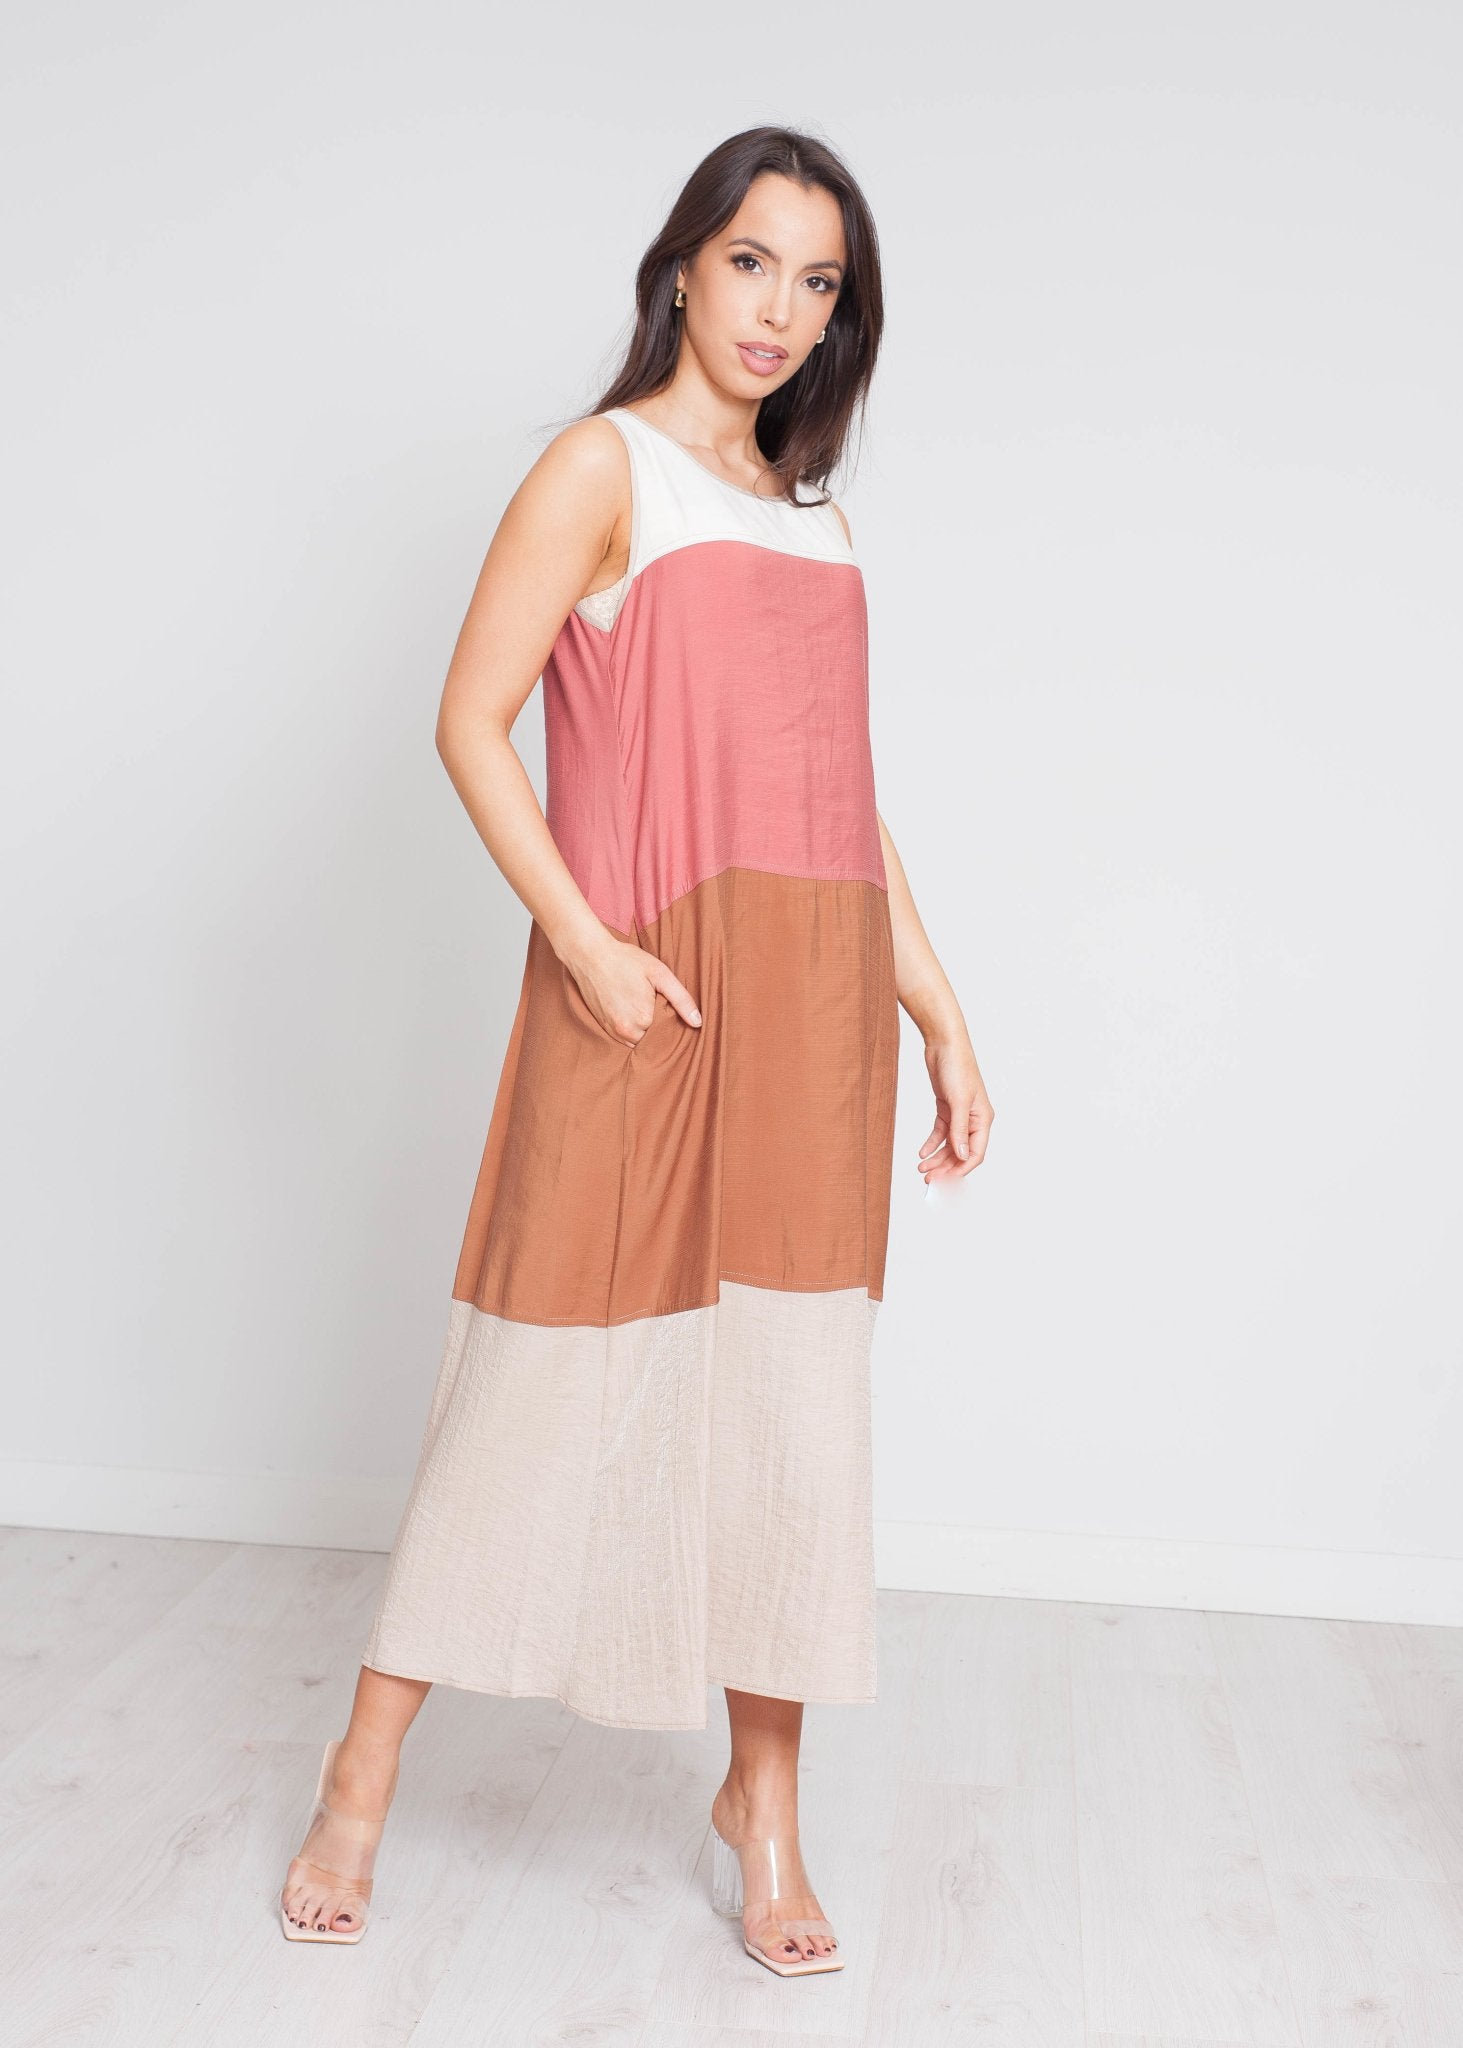 Faye Colour Block Dress In Neutral Mix - The Walk in Wardrobe